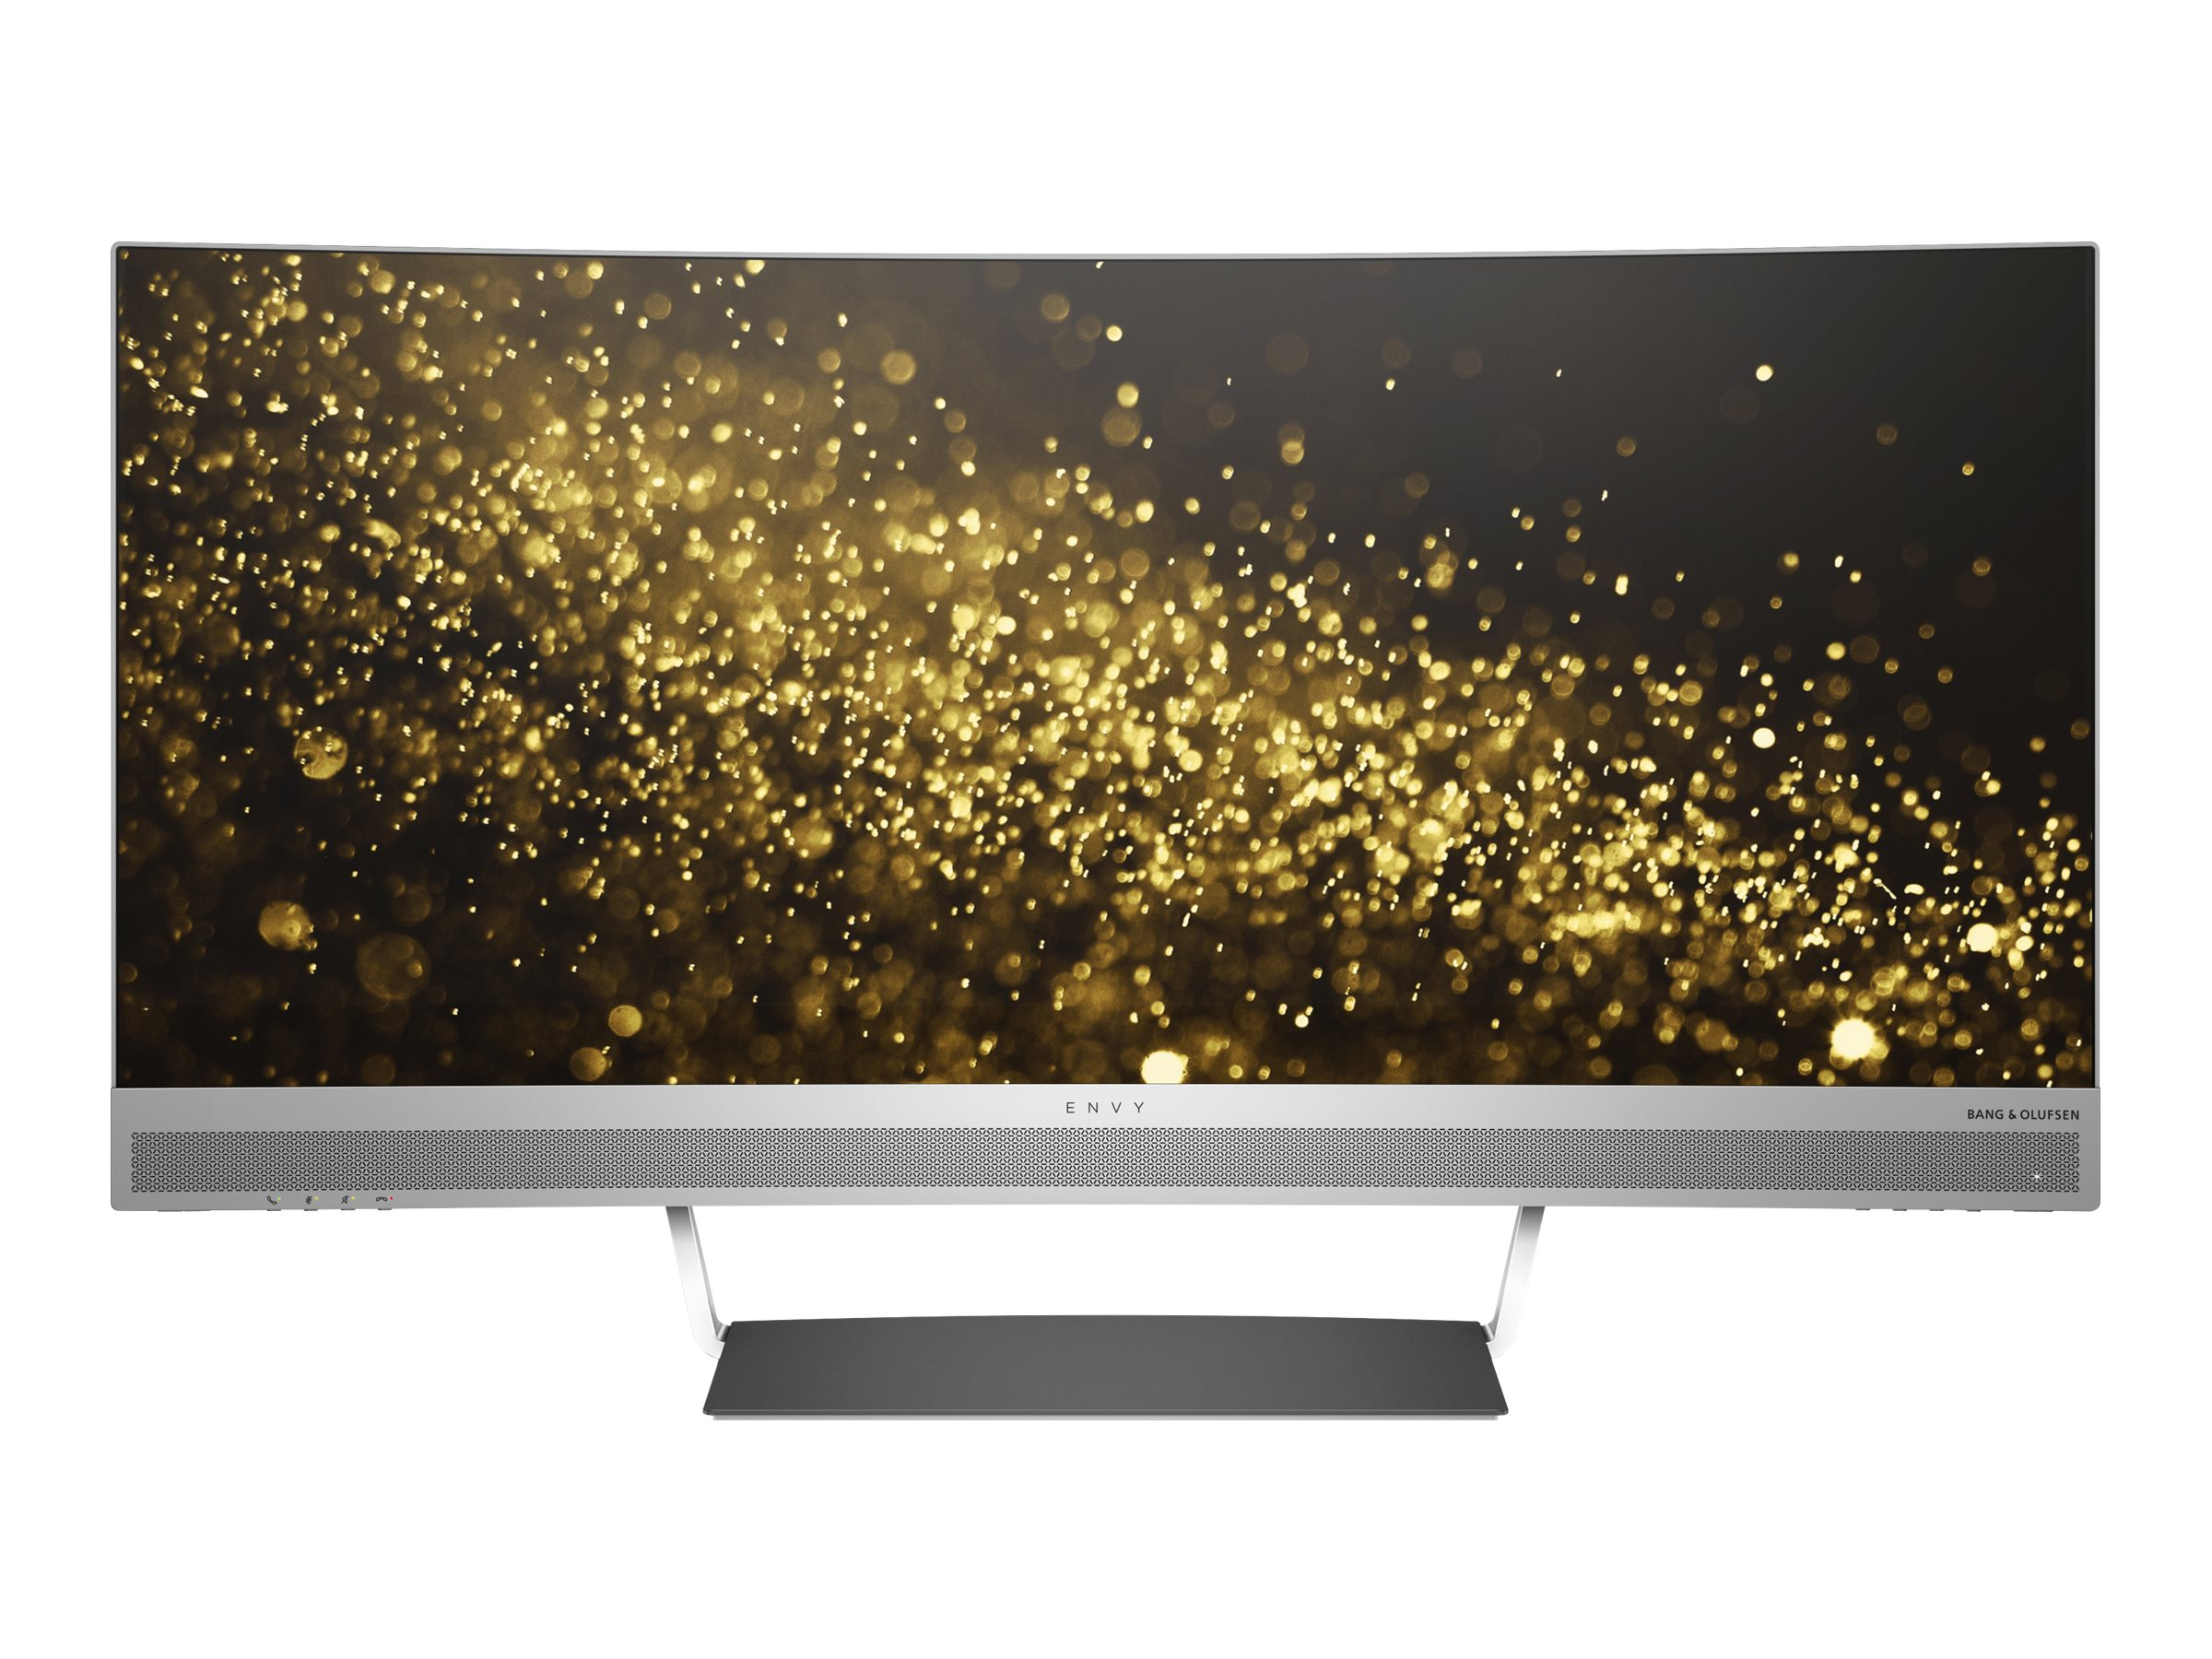 "Image for Hp Envy 34 - Led Monitor - Curved - 34"" from Circuit City"